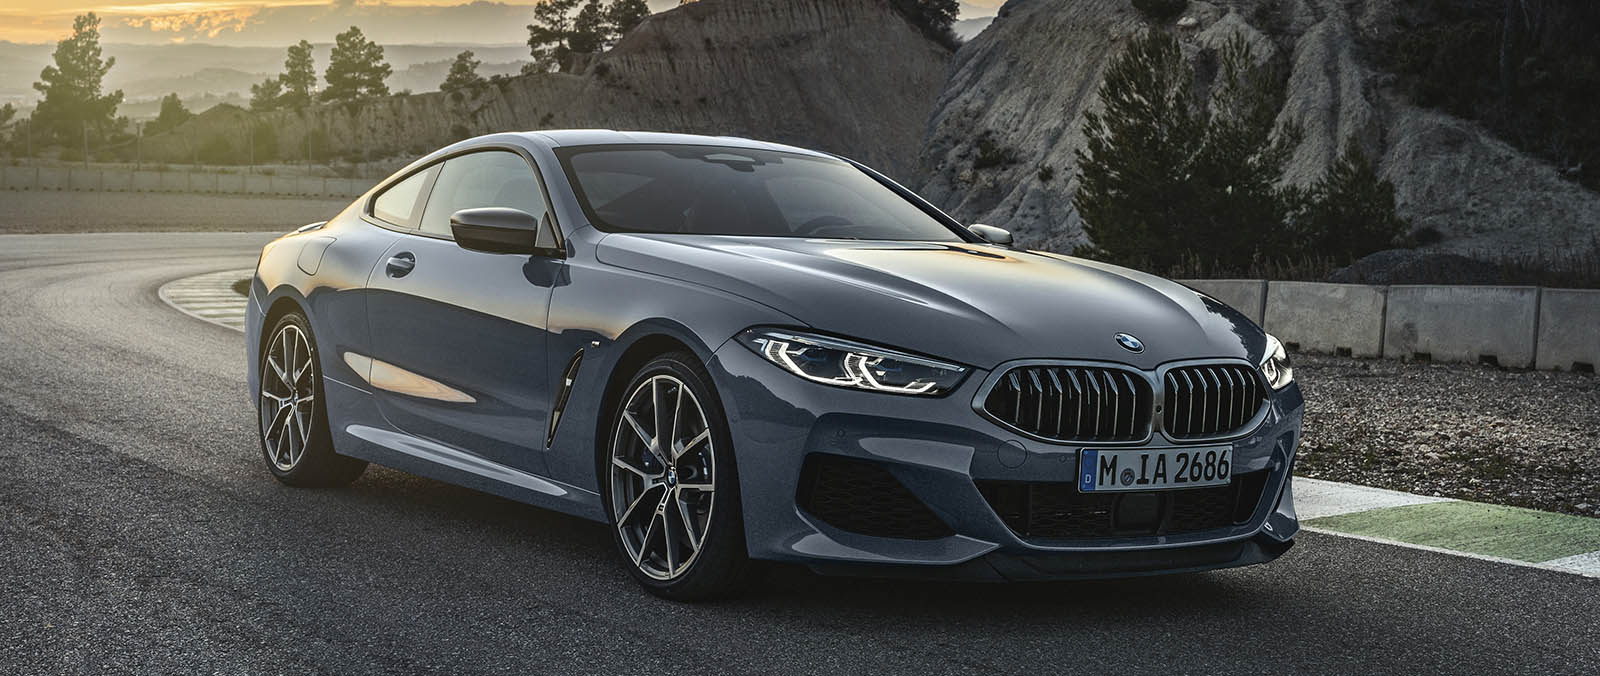 BMW 8 Serie Coupe vanaf € 124.400